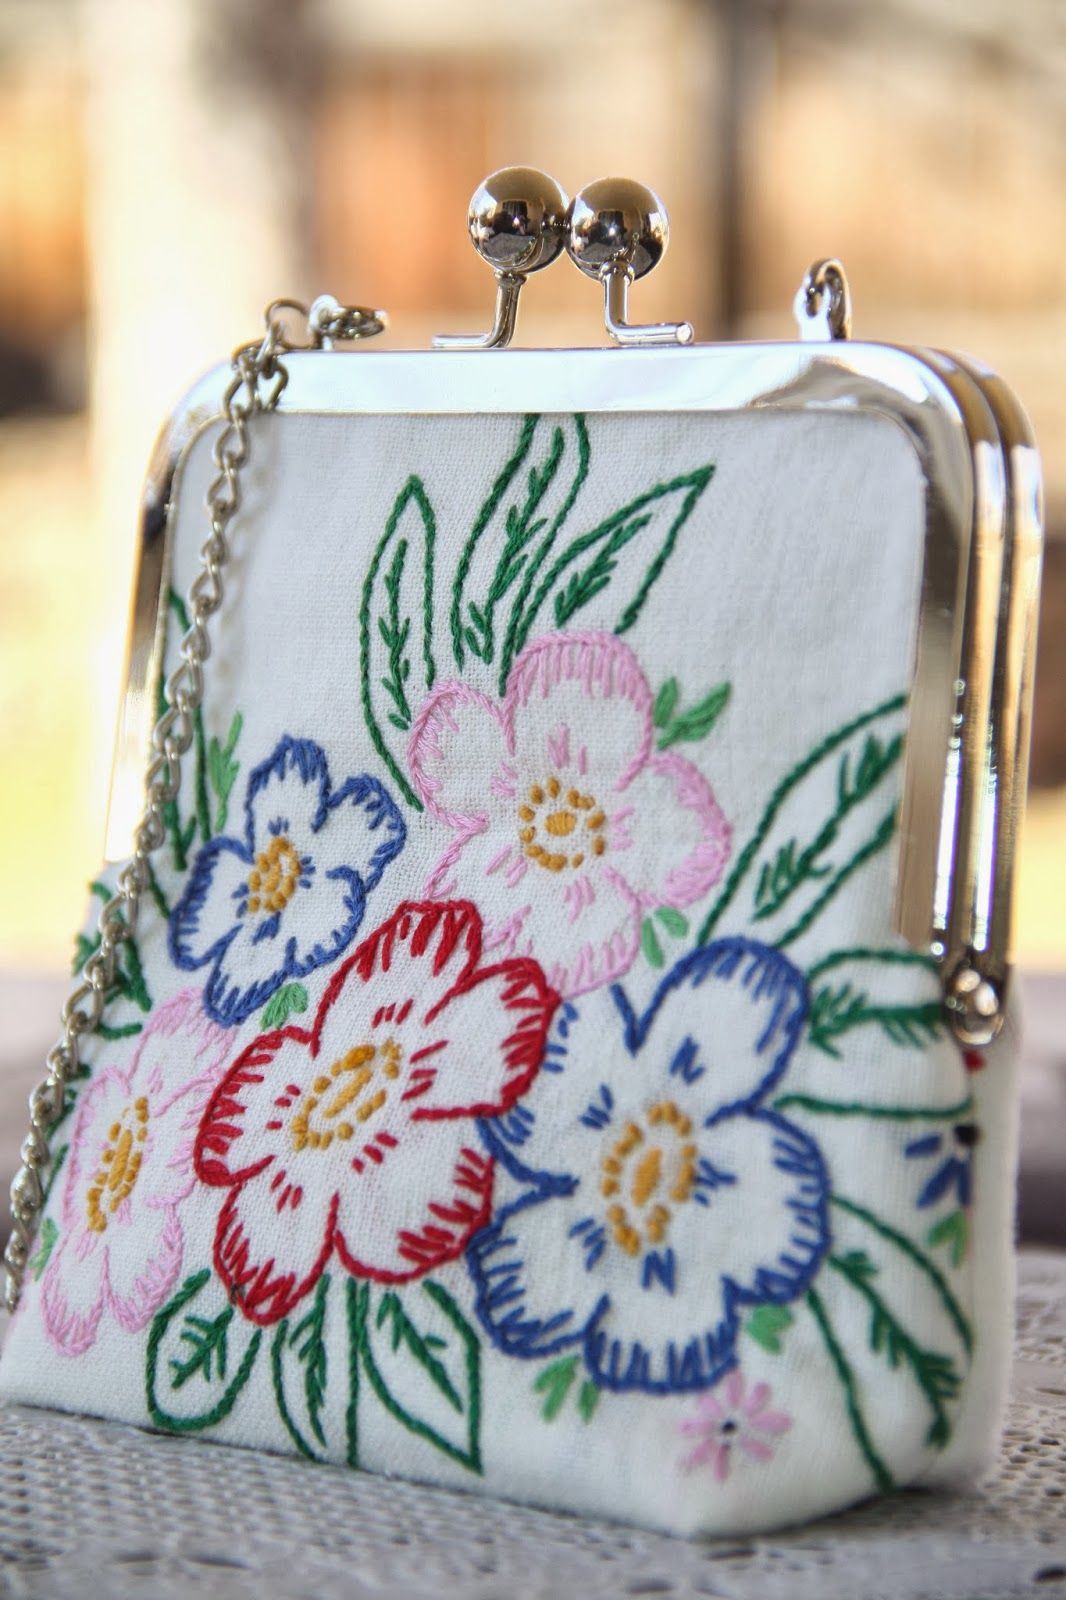 Isa creative musings vintage embroidered linen clutches